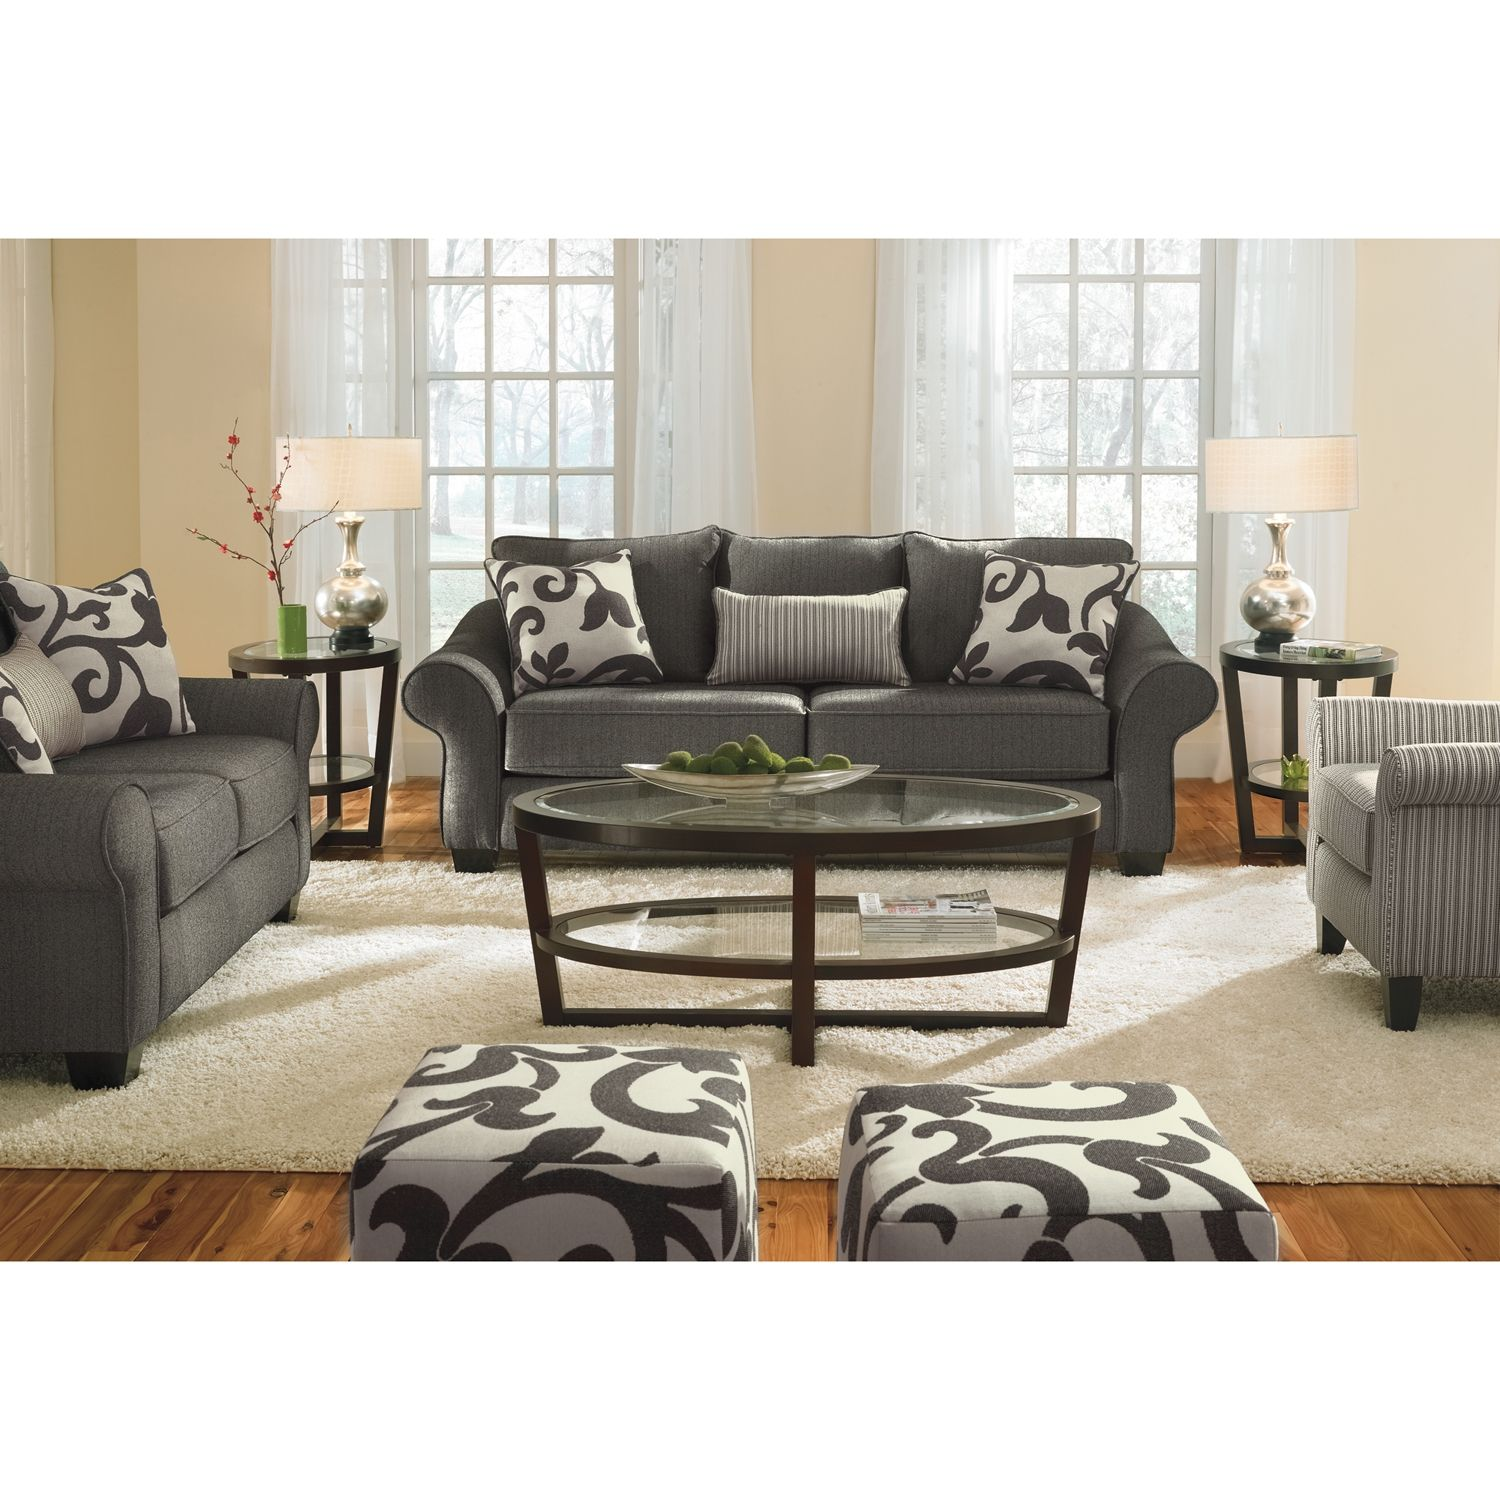 $500 Colette Upholstery 3 Seat Gray Herringbone Sofa with Accent ...